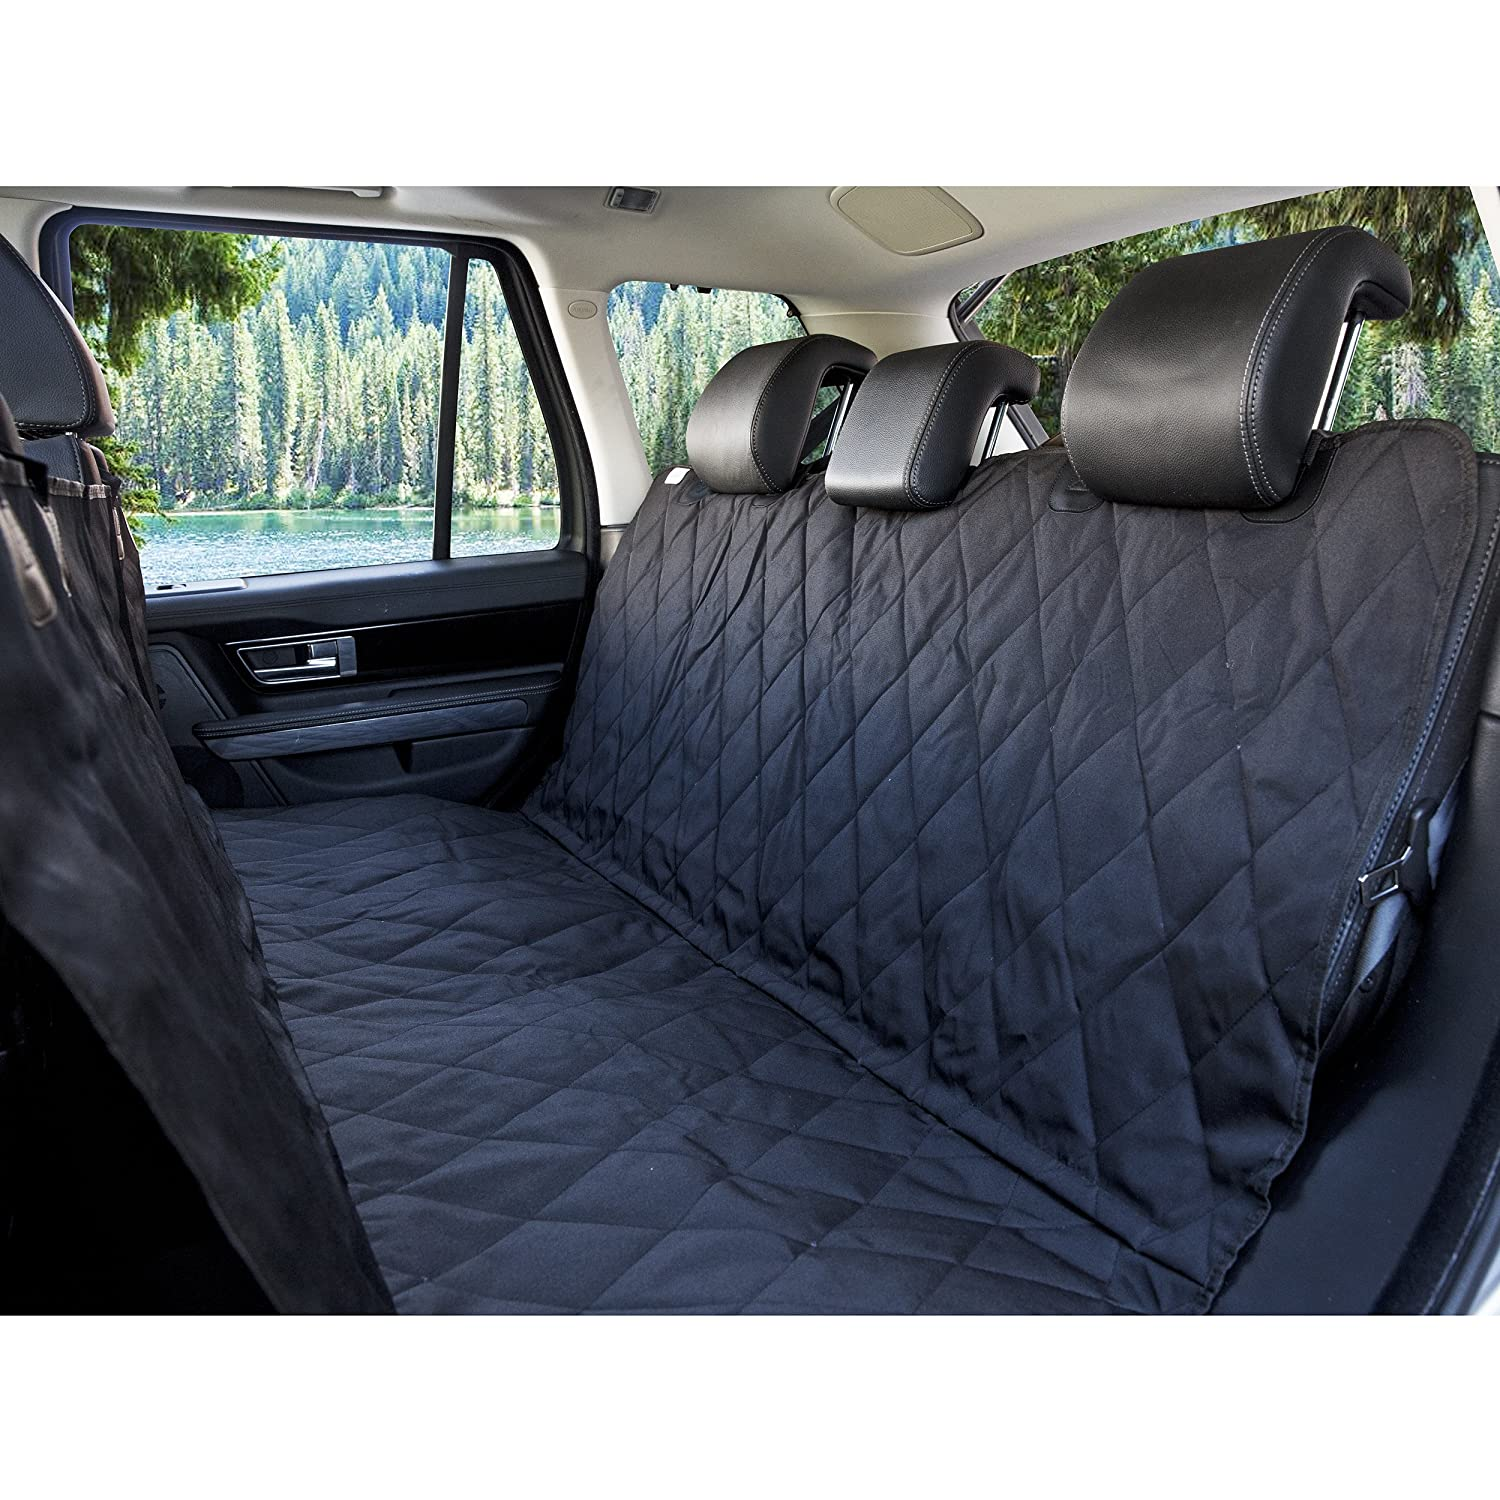 BarksBar Pet Seat Covers for Trucks